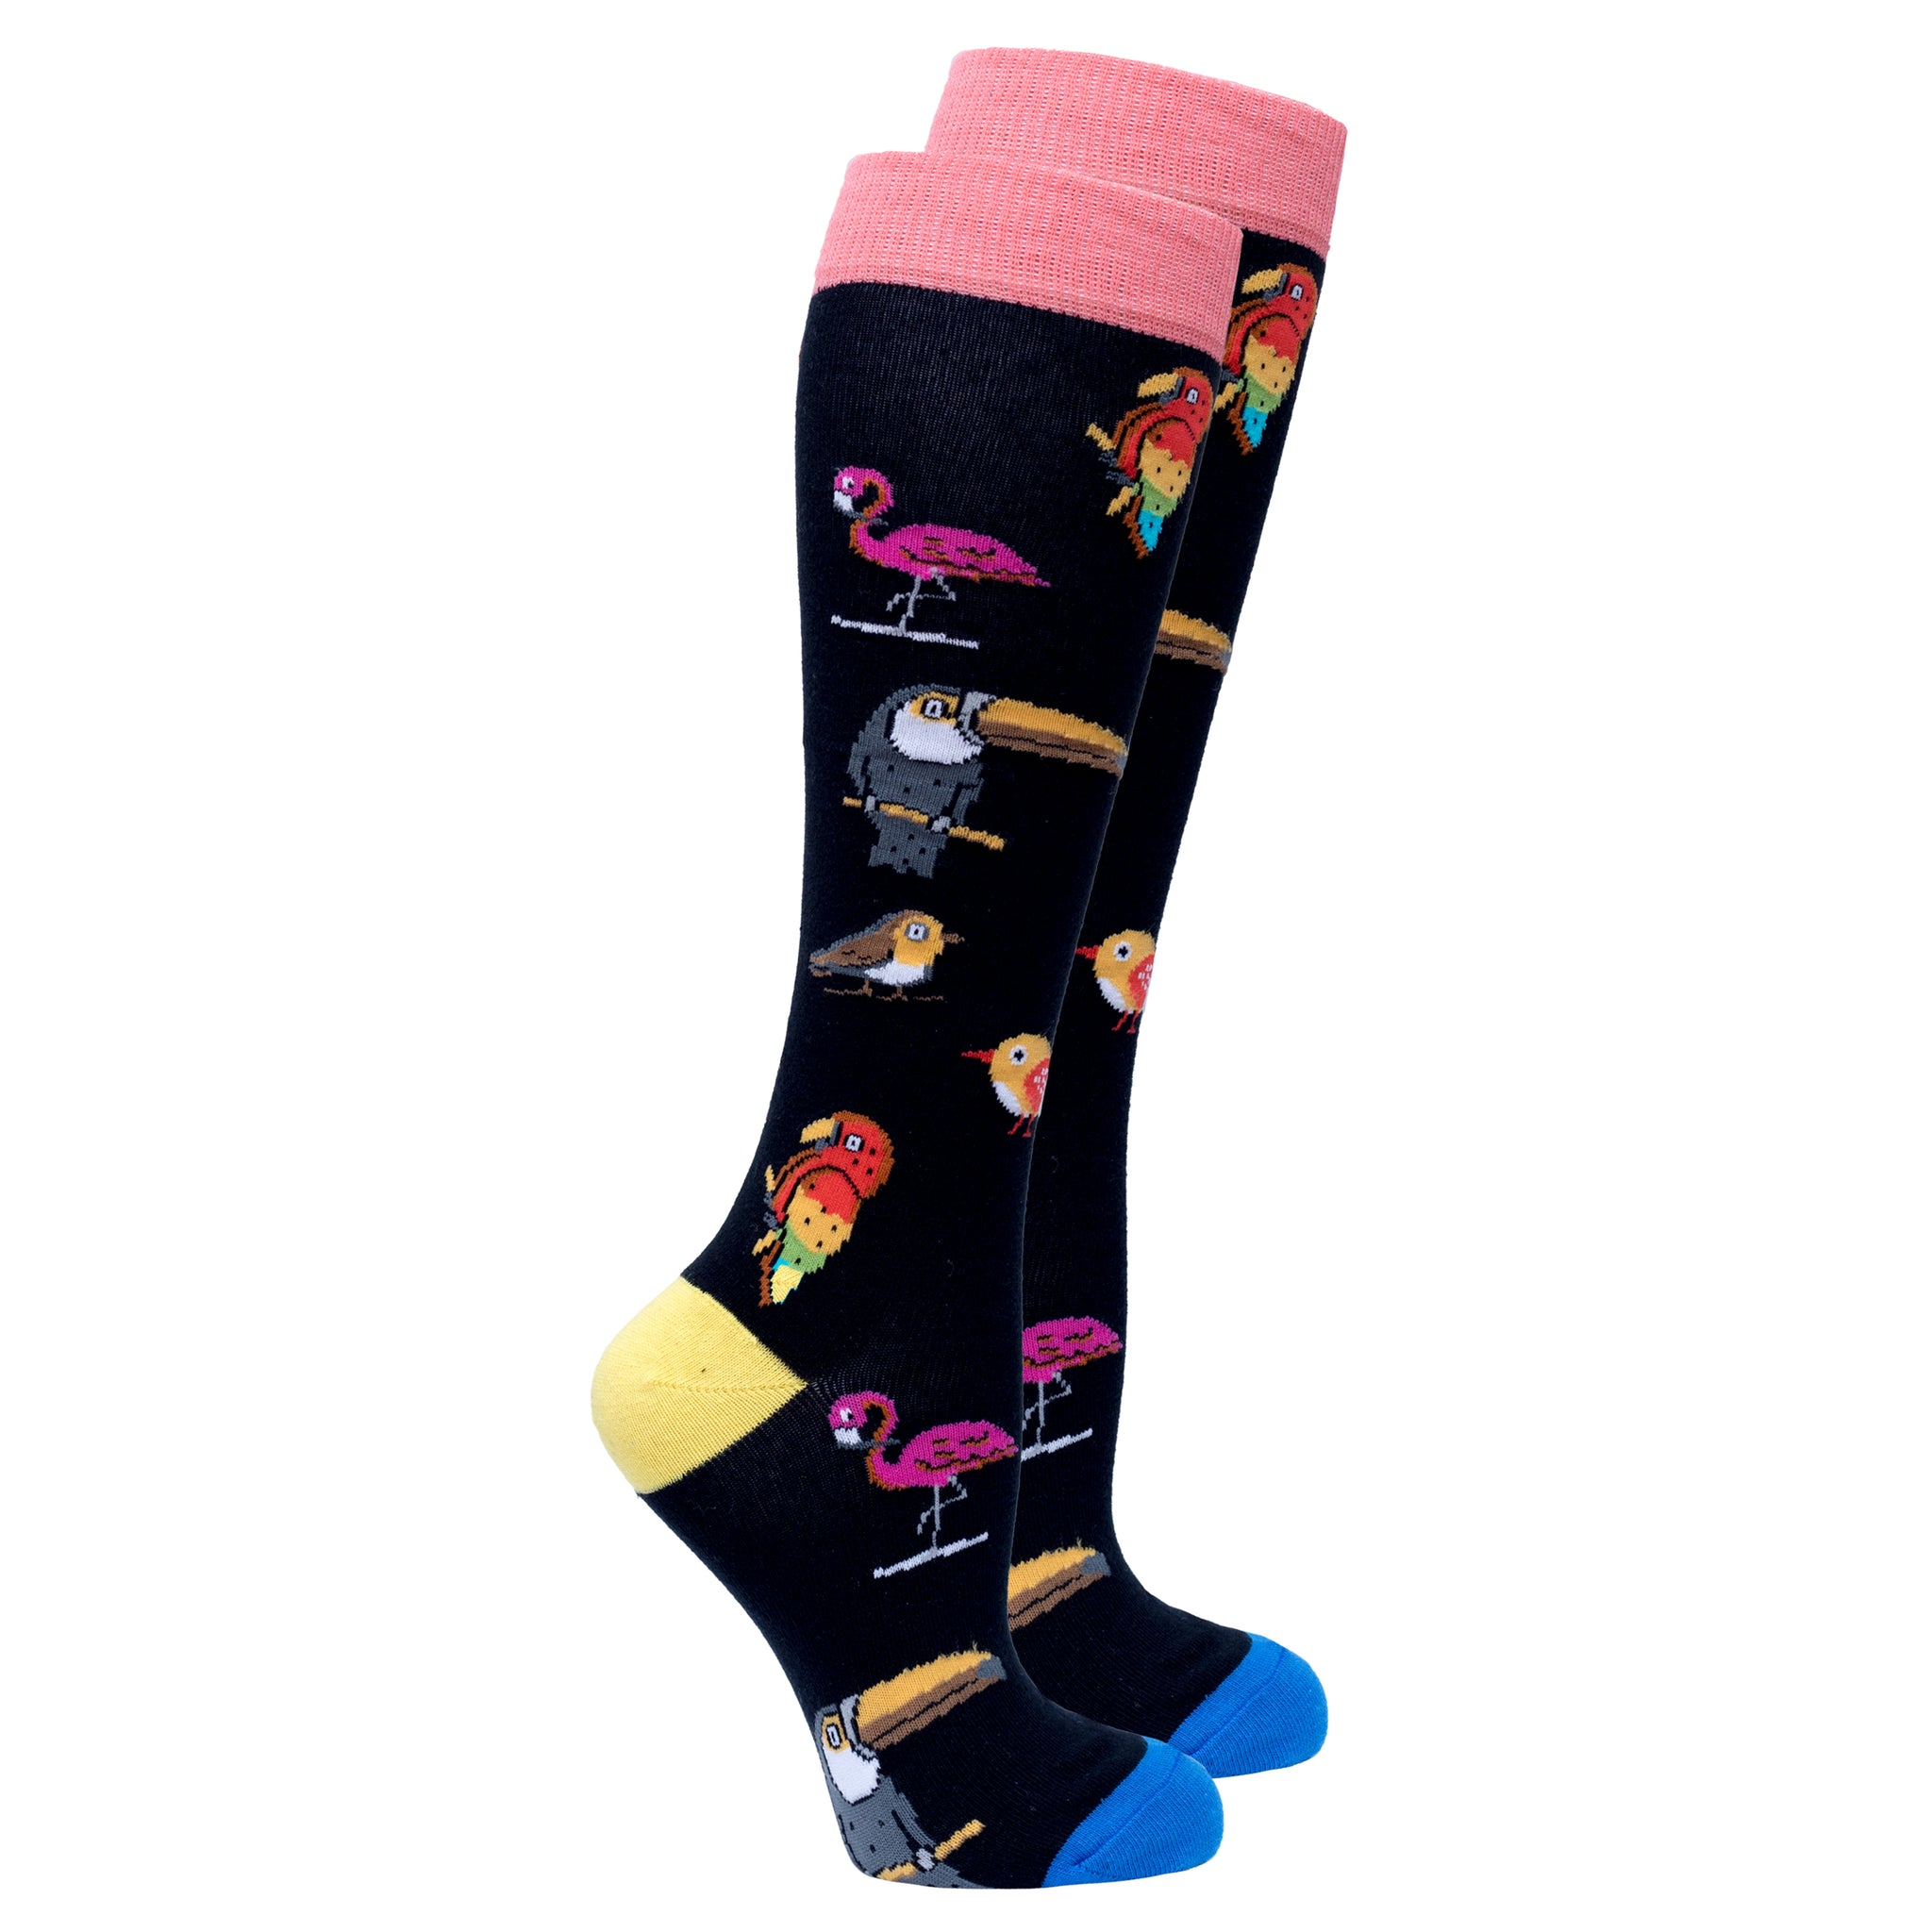 Women's Wild Birds Knee High Socks